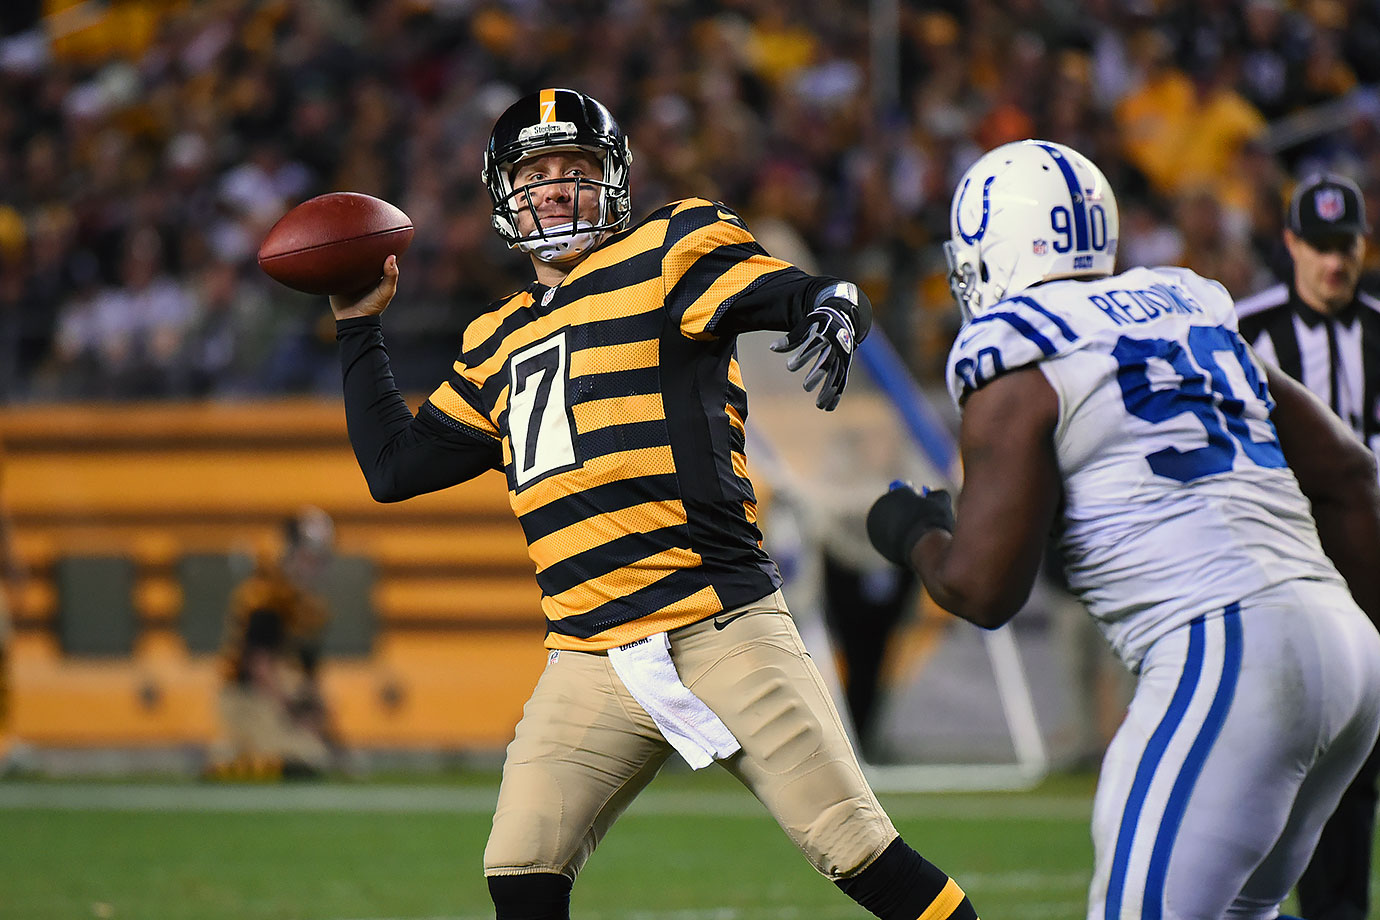 40 of 49 for 522 yards and six touchdowns in a 51-34 win over the Indianapolis Colts at Heinz Field in Pittsburgh.